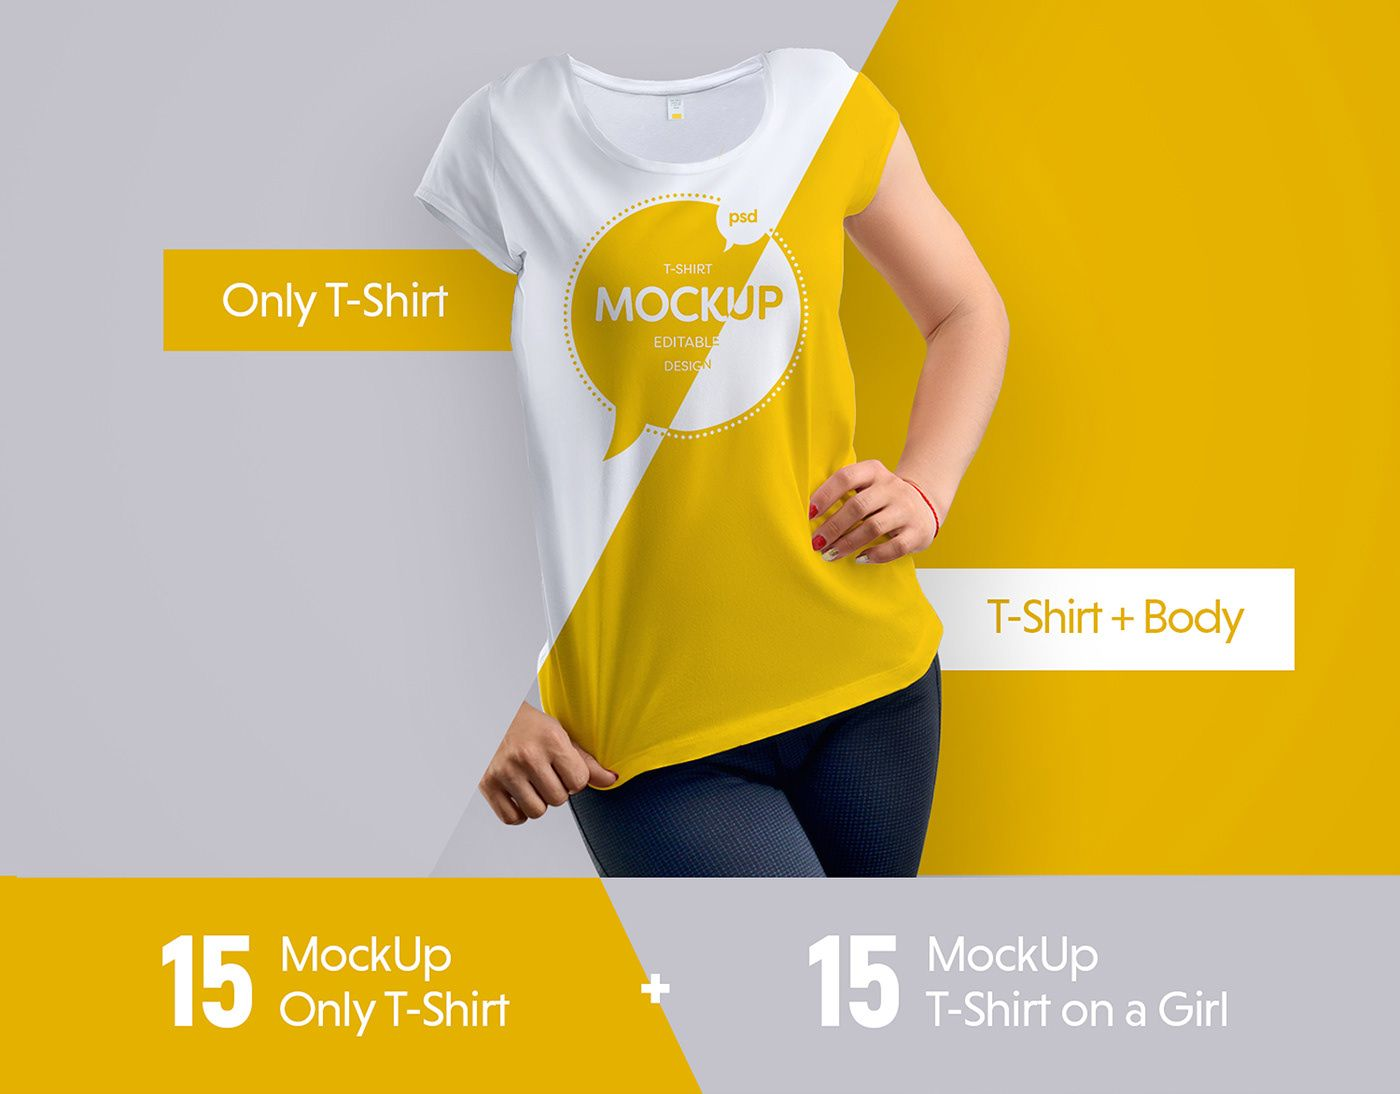 Download 55 Free Clothing Accessories Psd Mockup Templates Free Psd Templates Shirt Mockup T Shirt Design Template Tshirt Mockup